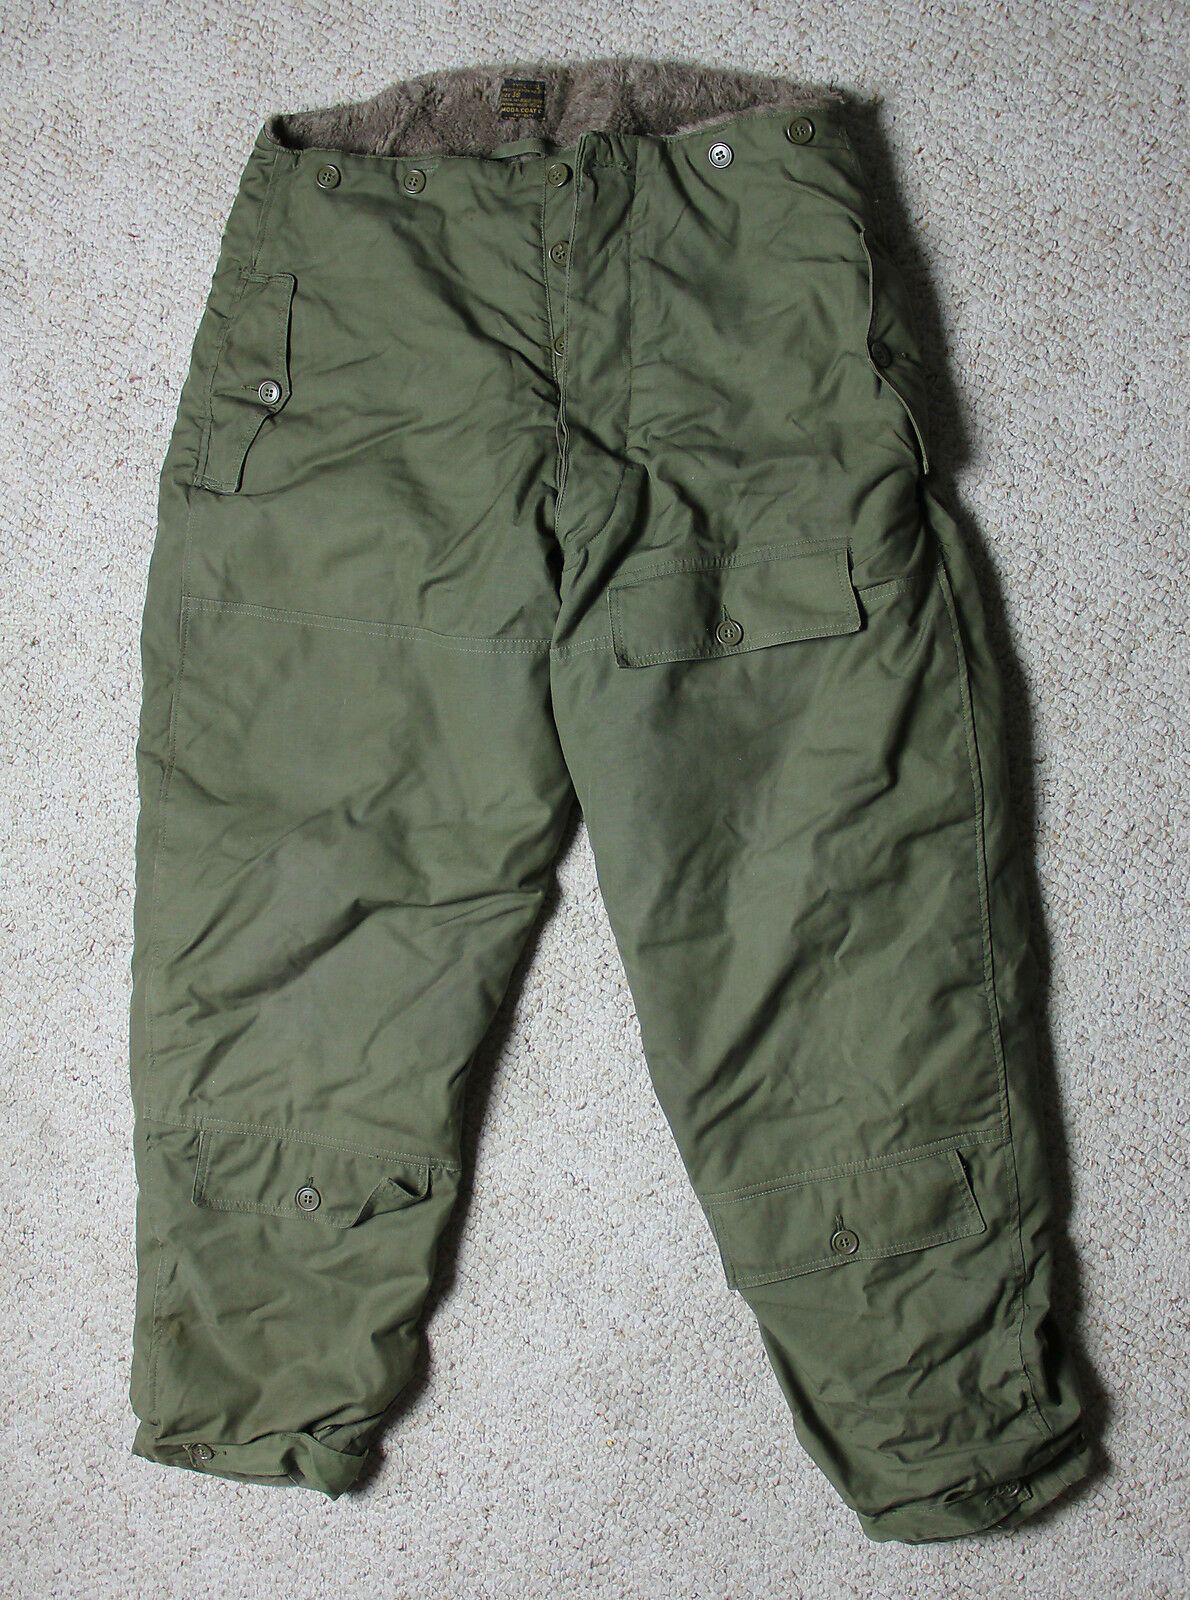 WWII Era USAAF A-10 Insulated Cold Weather Trousers Size 38 US Army Air Forces